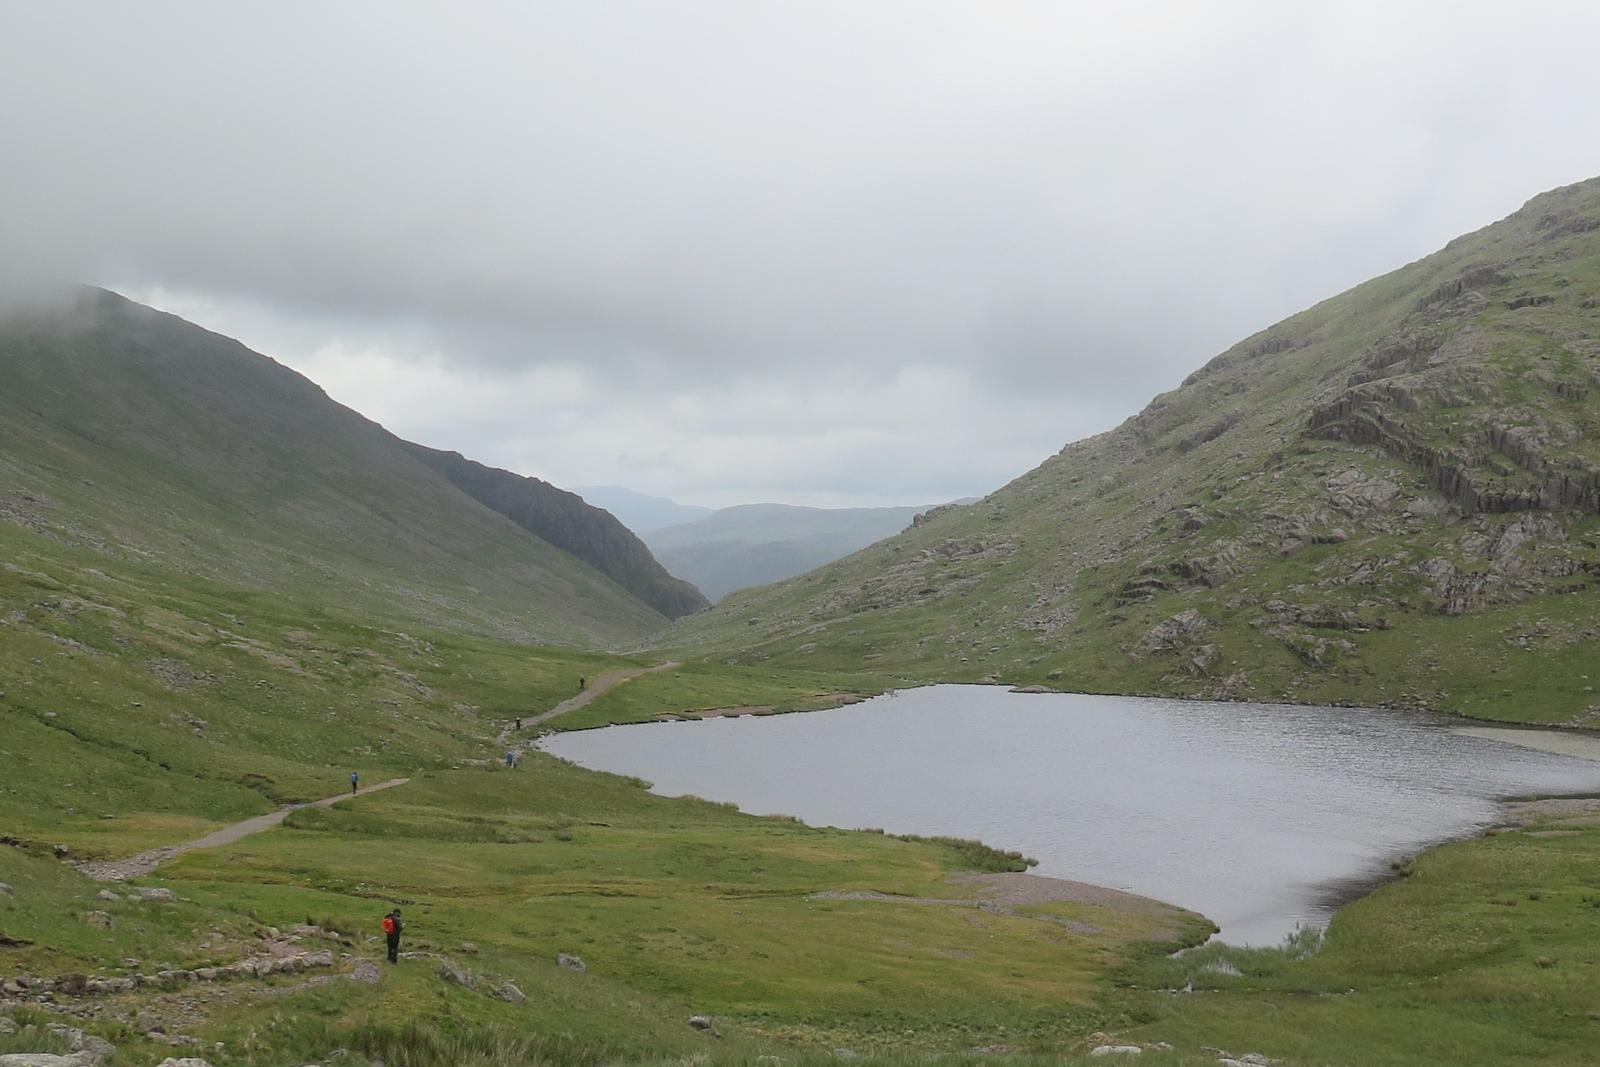 Photo of Styhead Tarn, 438 m